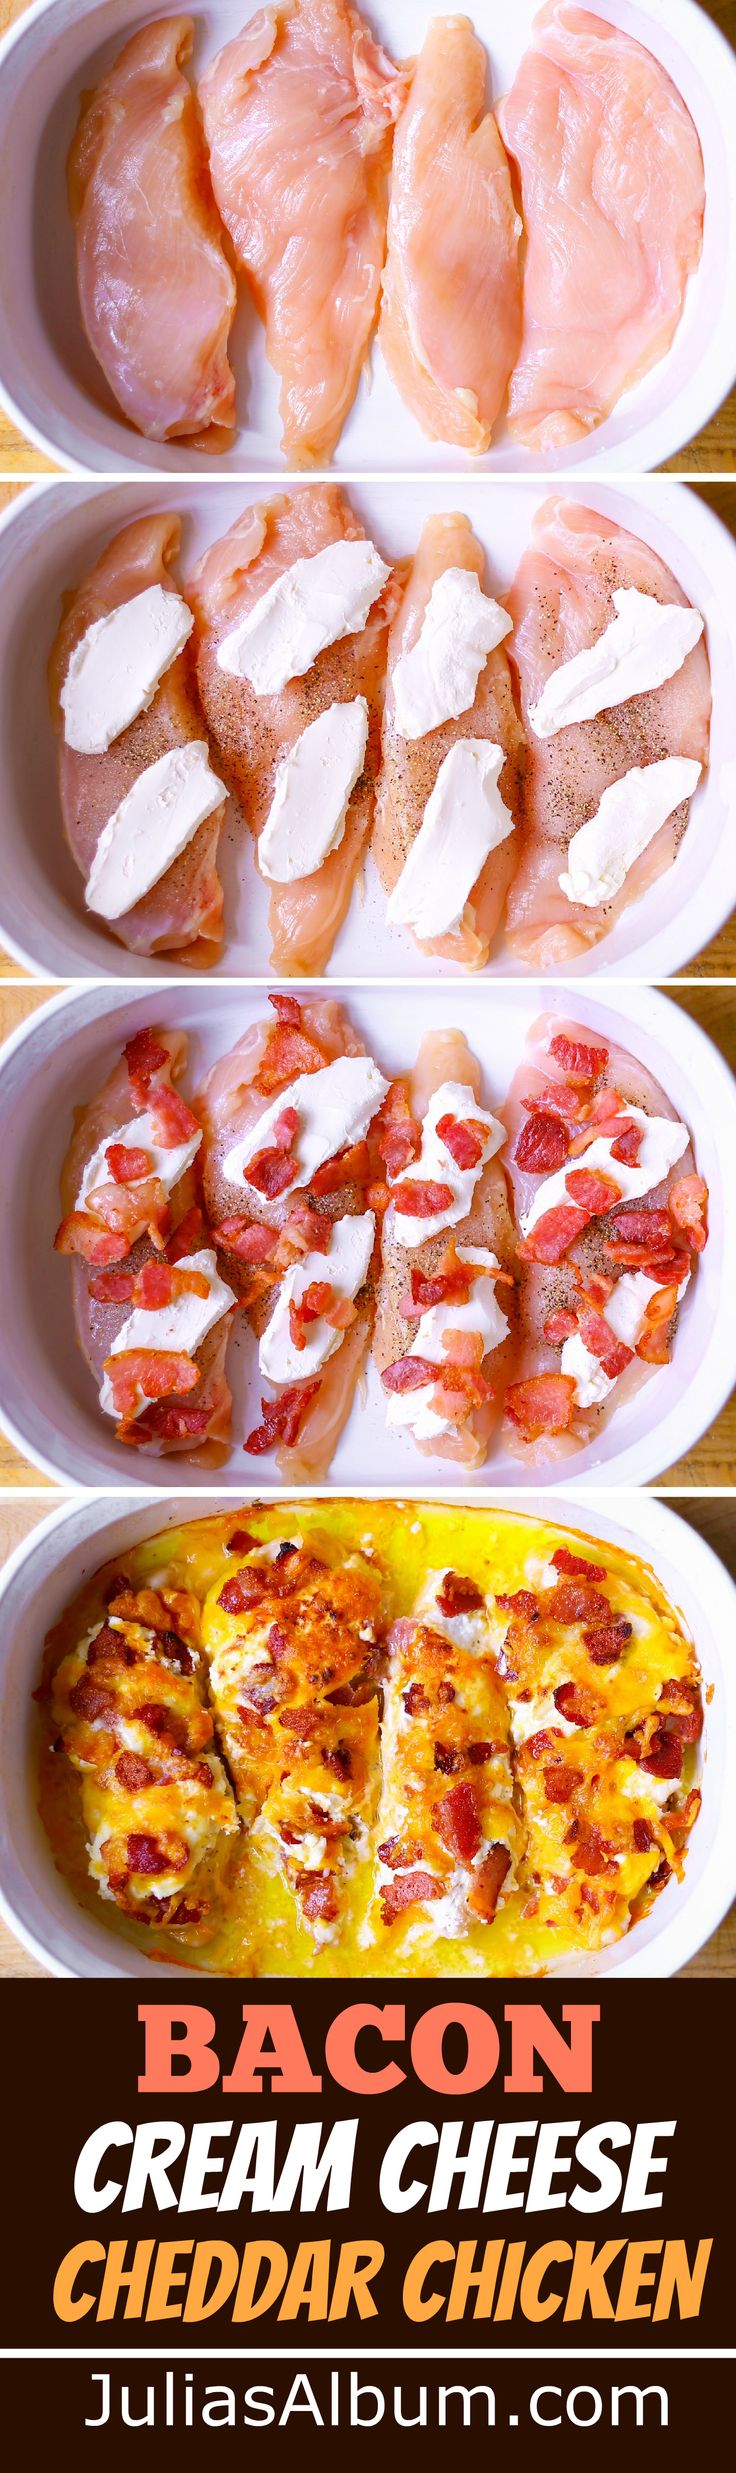 Bacon, Cream Cheese, Cheddar Chicken Bake Recipe.